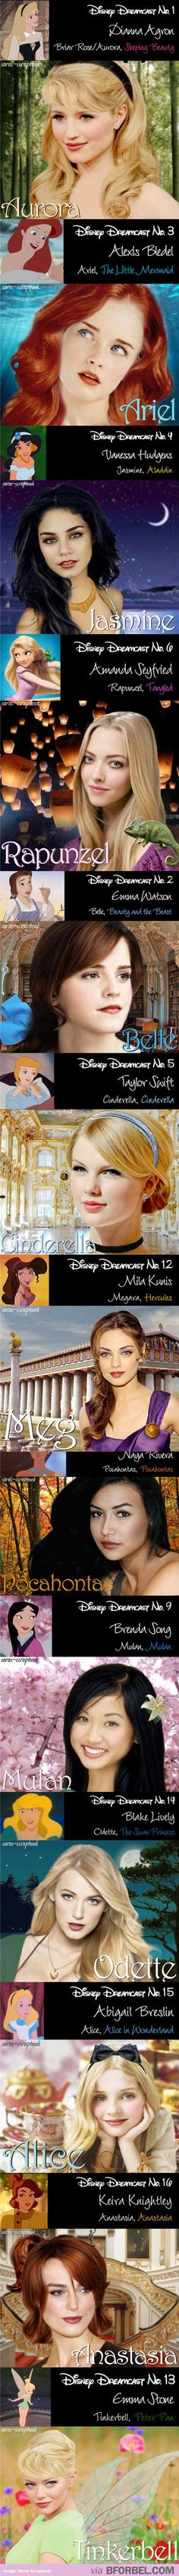 dont like Ariel or Cinderella but the rest are good